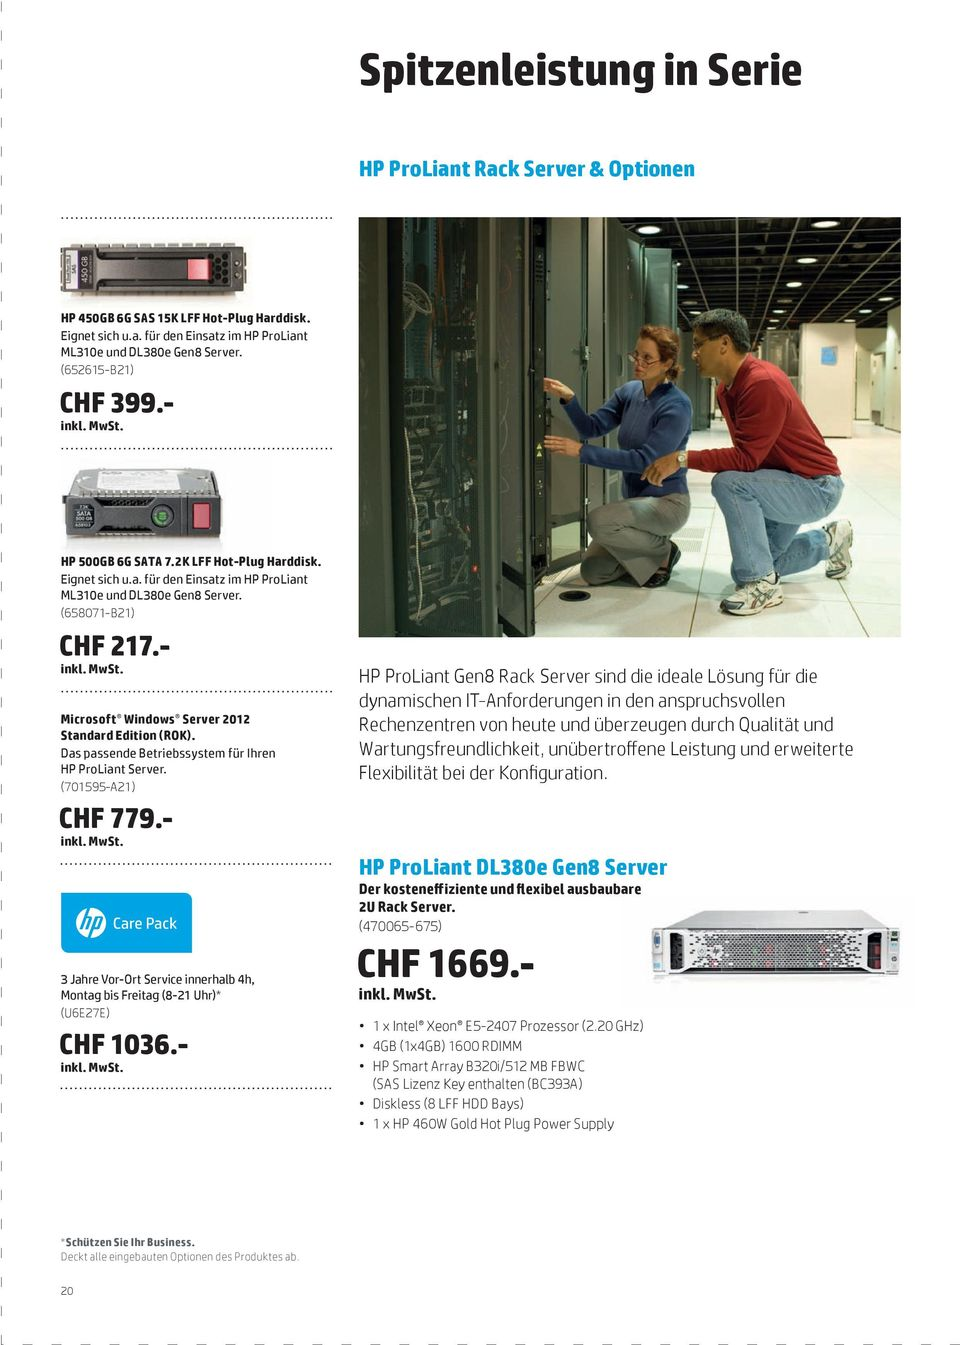 - Microsoft Windows Server 2012 Standard Edition (ROK). Das passende Betriebssystem für Ihren HP ProLiant Server. (701595-A21) CHF 779.